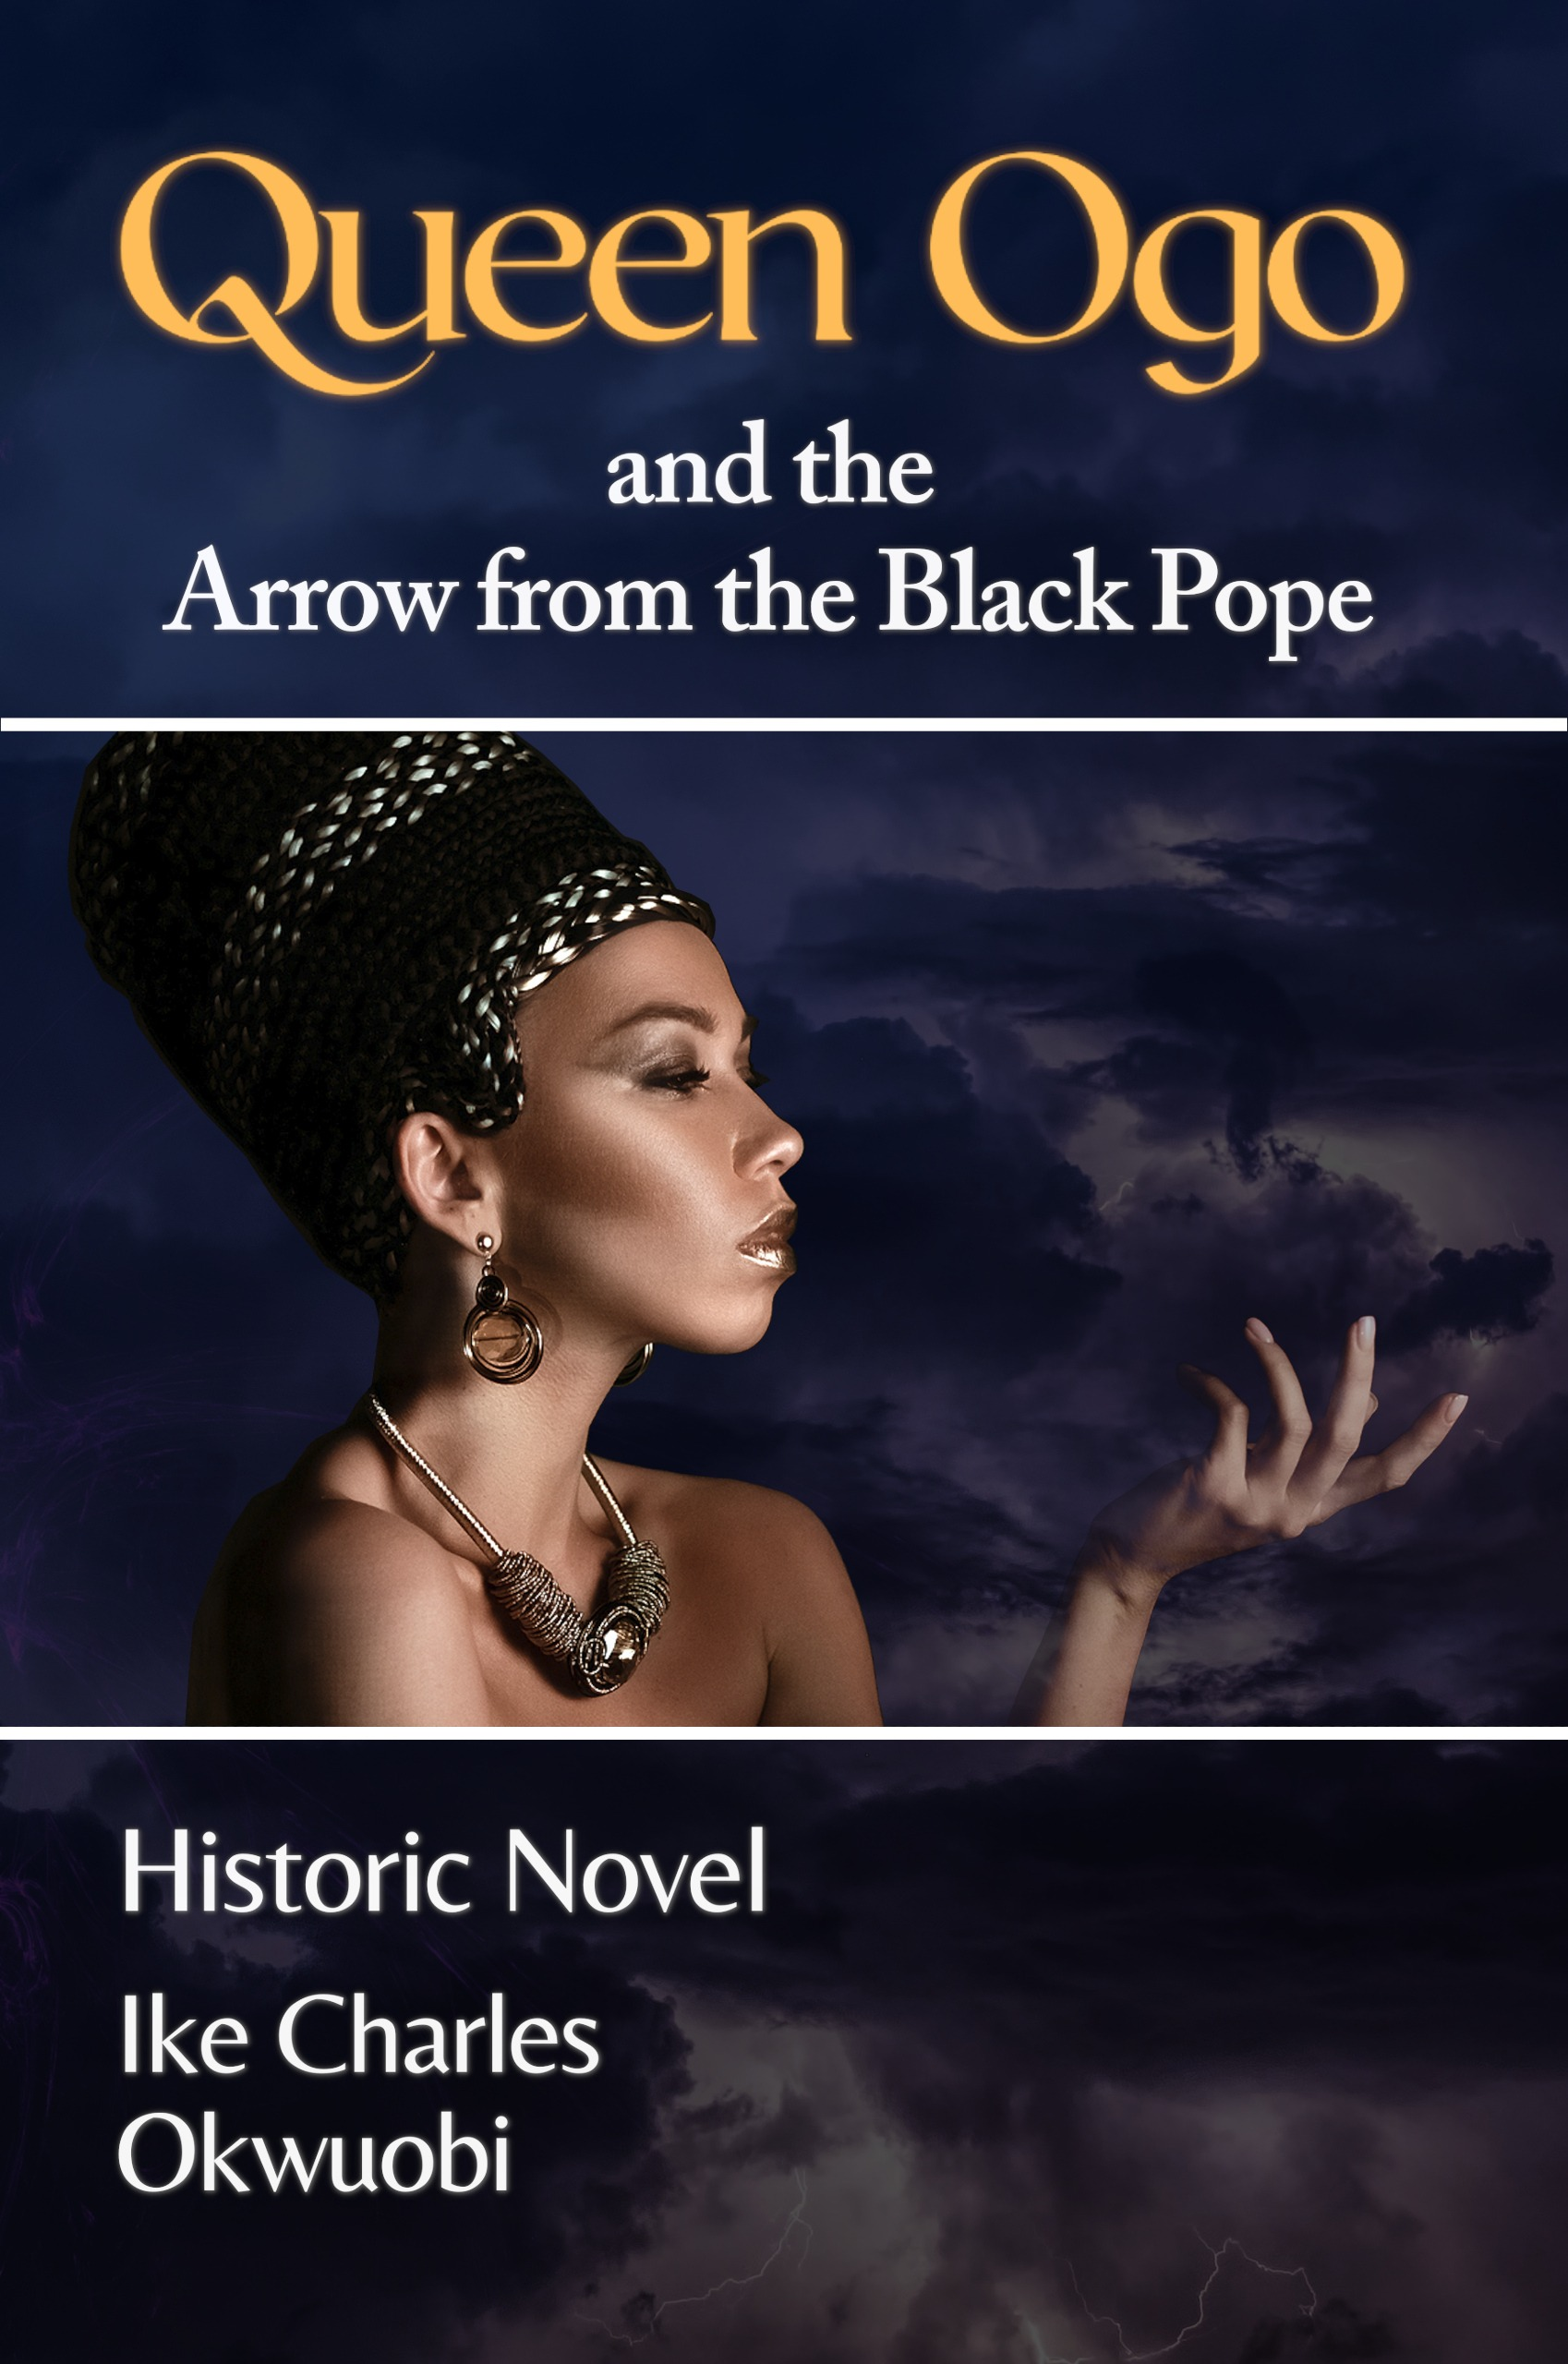 Queen Ogo and the Arrow from the Black Pope